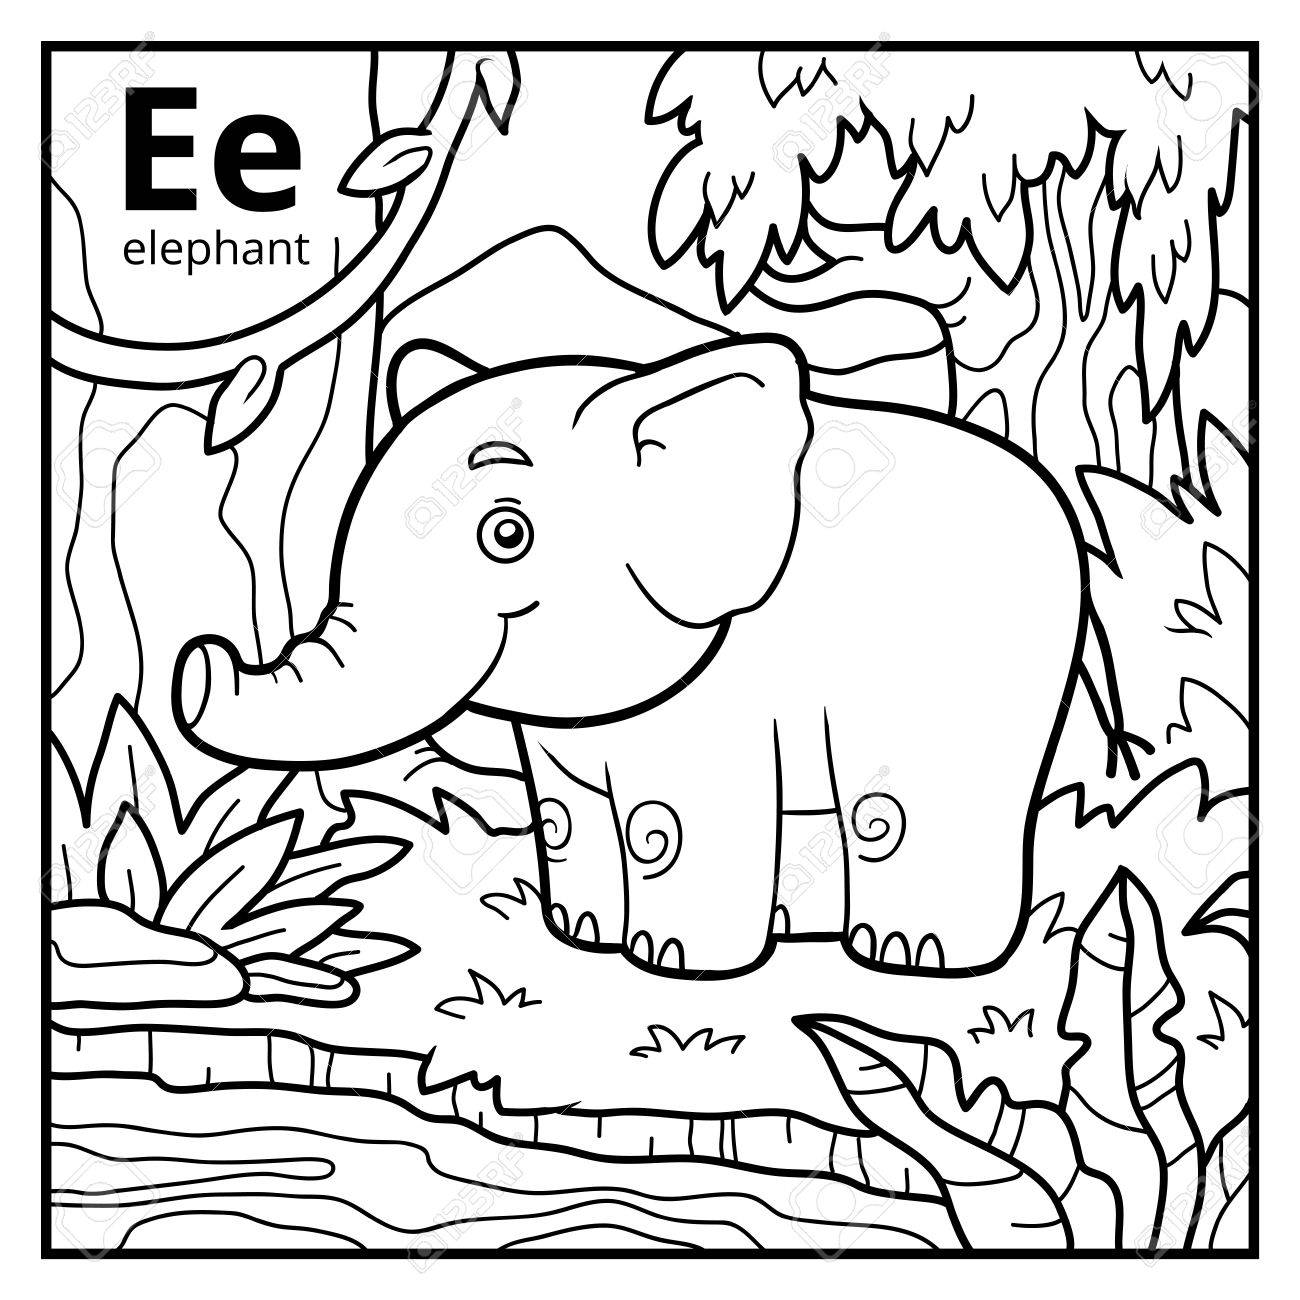 Coloring Book For Children Colorless Alphabet Letter E Elephant Stock Vector